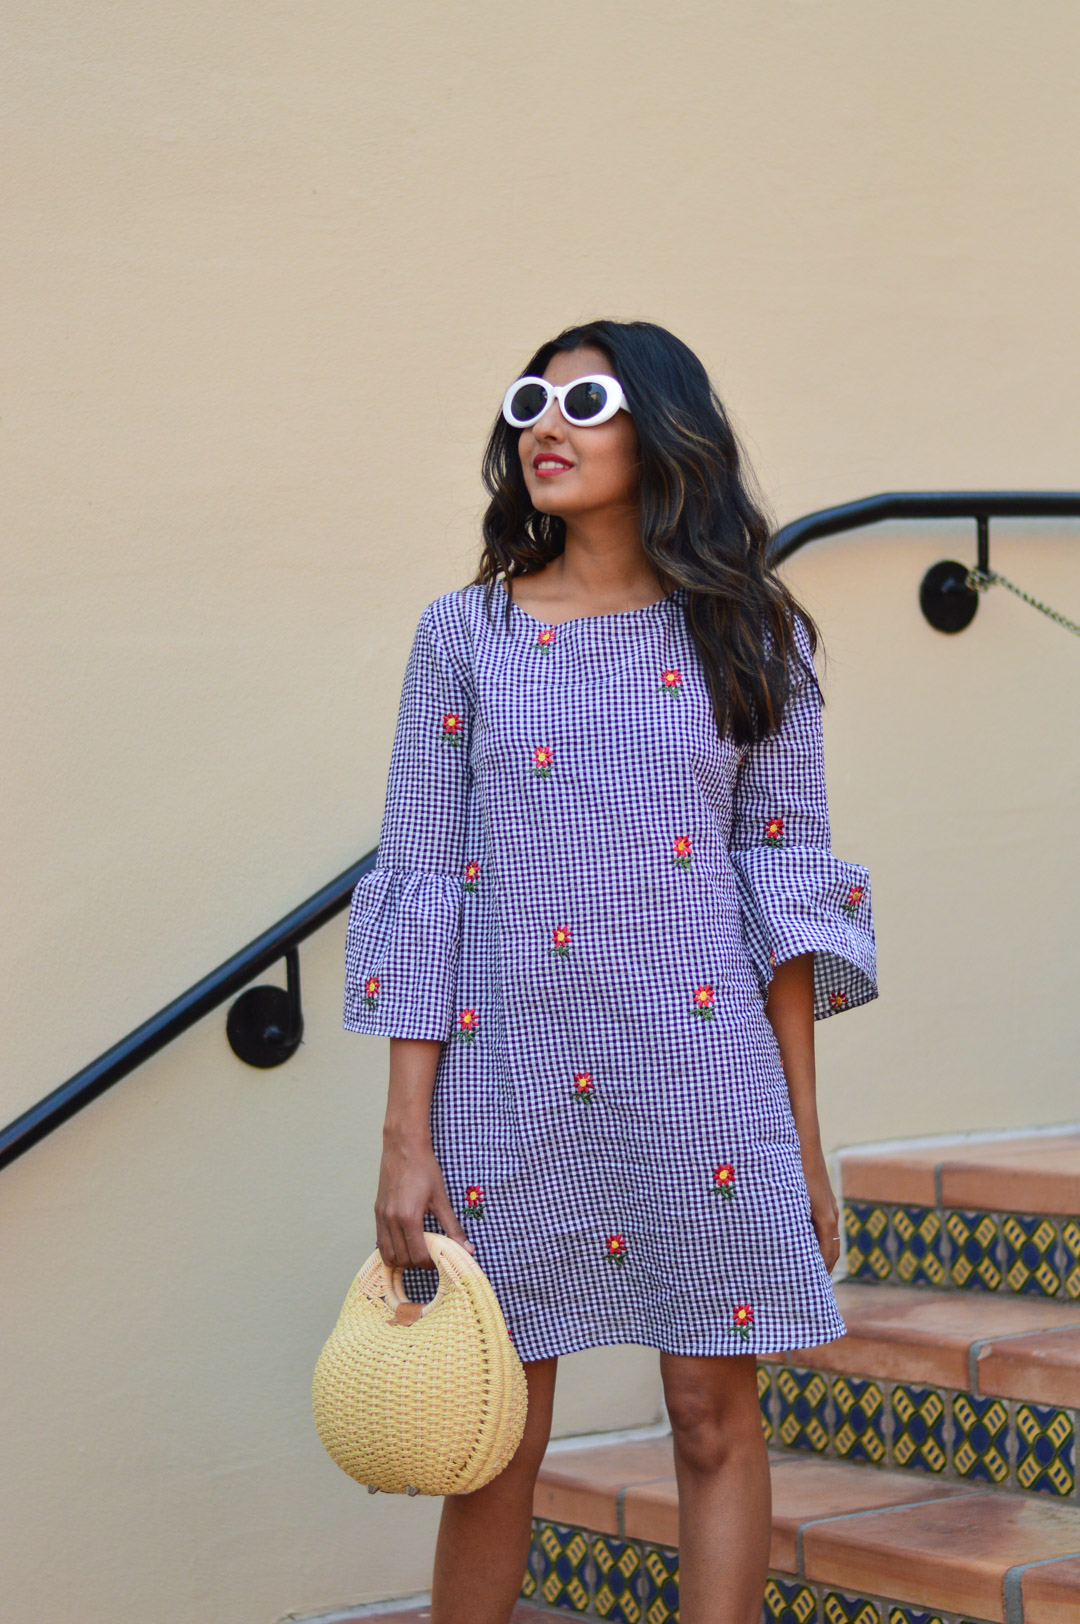 gingham-embroidered-dress-summer-trends-fashion-blogger-outfit 2